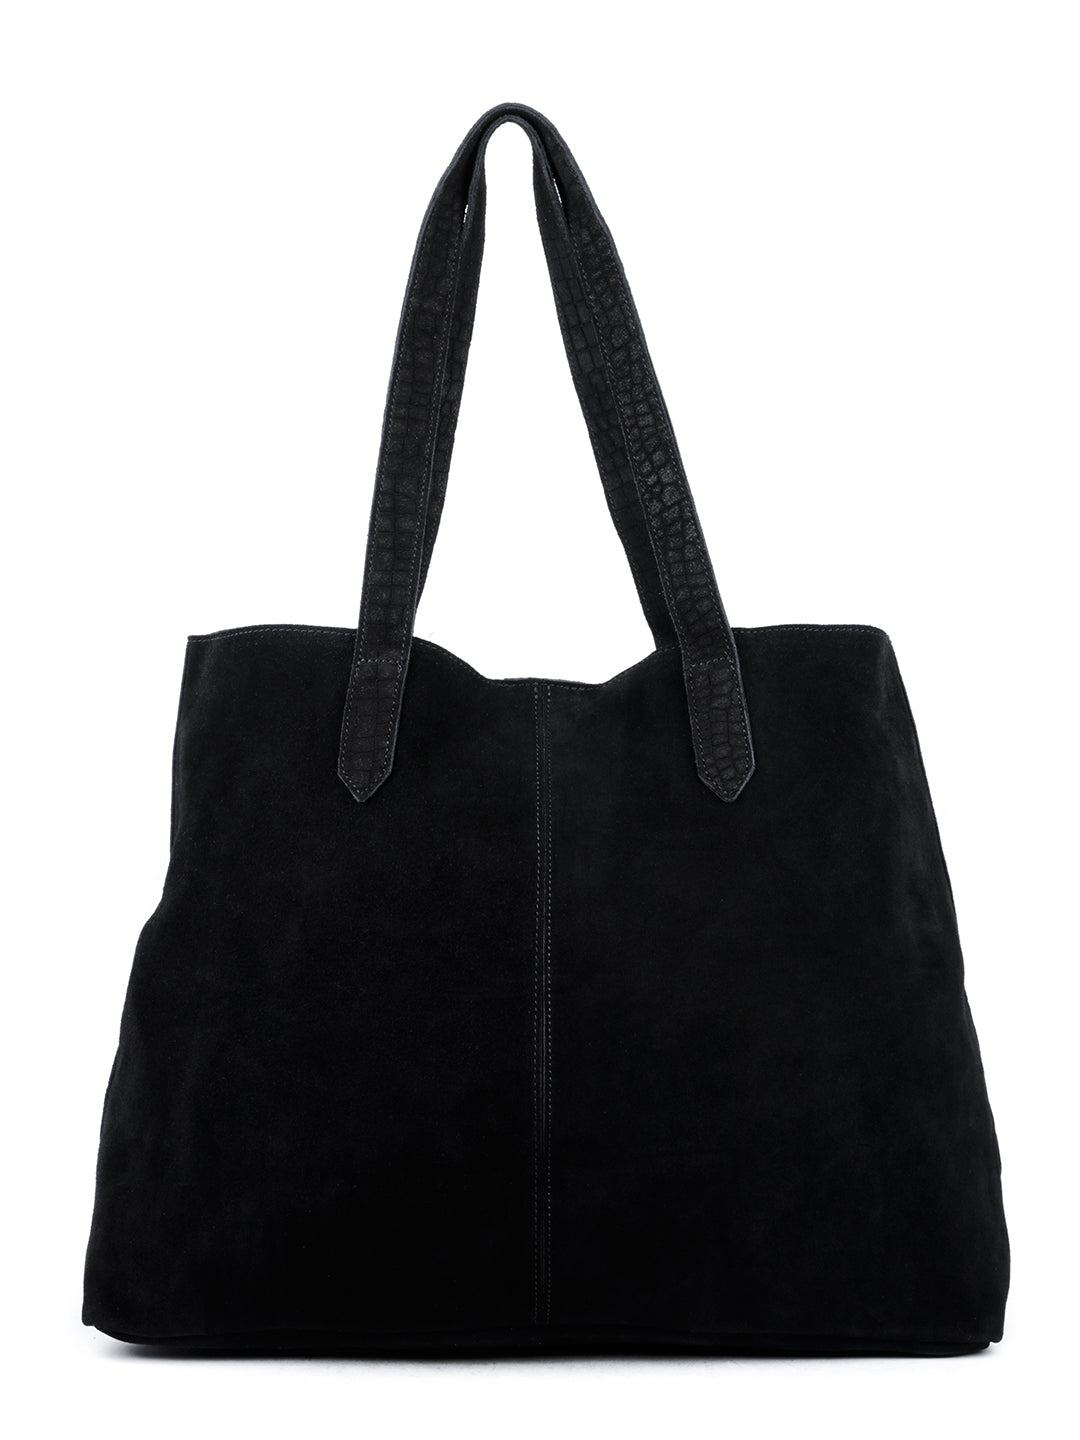 Black Fabric Tote Bag - London Rag India